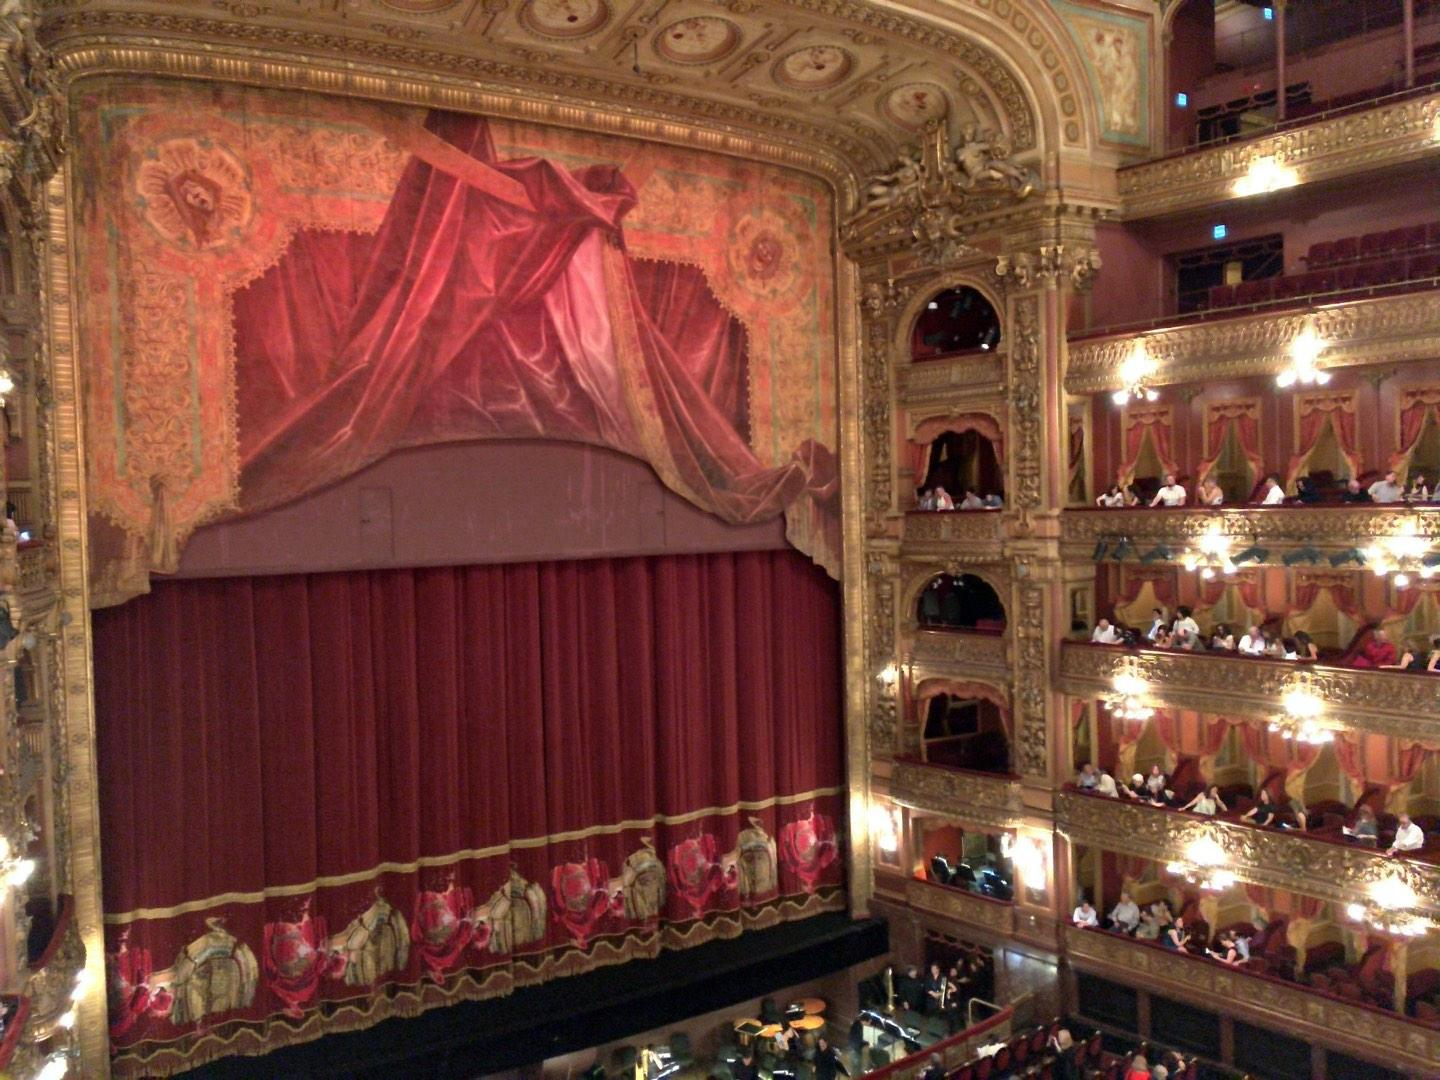 Teatro Colón Section Cazuela Lateral Row 1 Seat 39